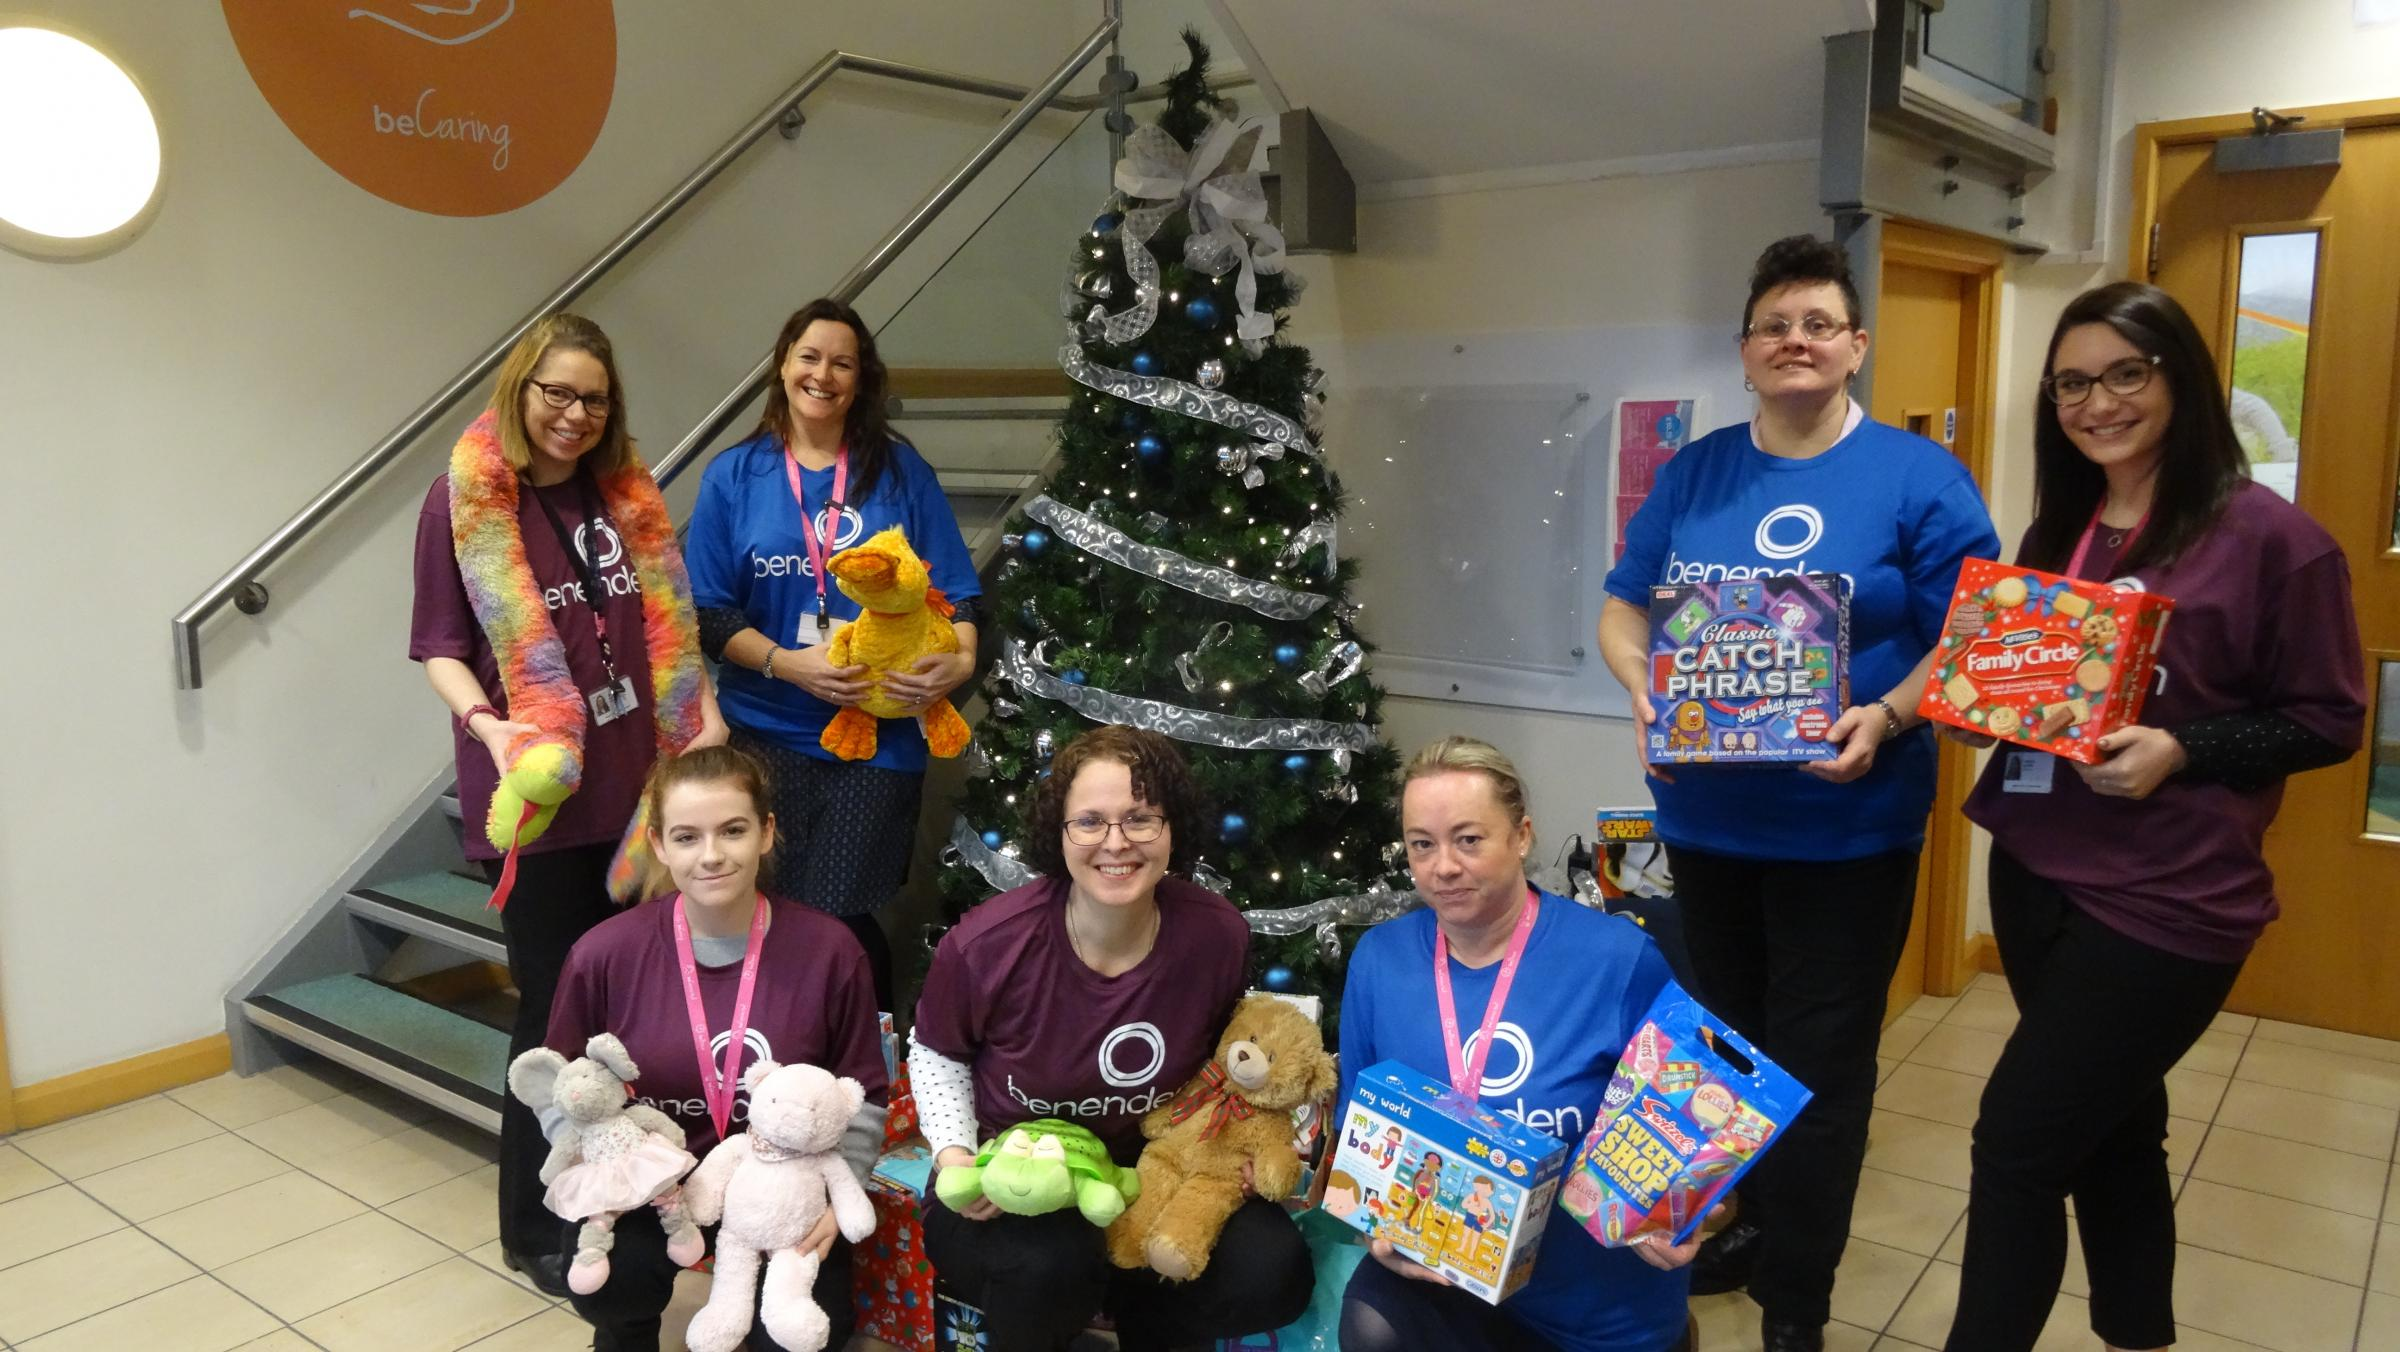 Staff at Benenden pictured with some of the gifts donated by colleagues